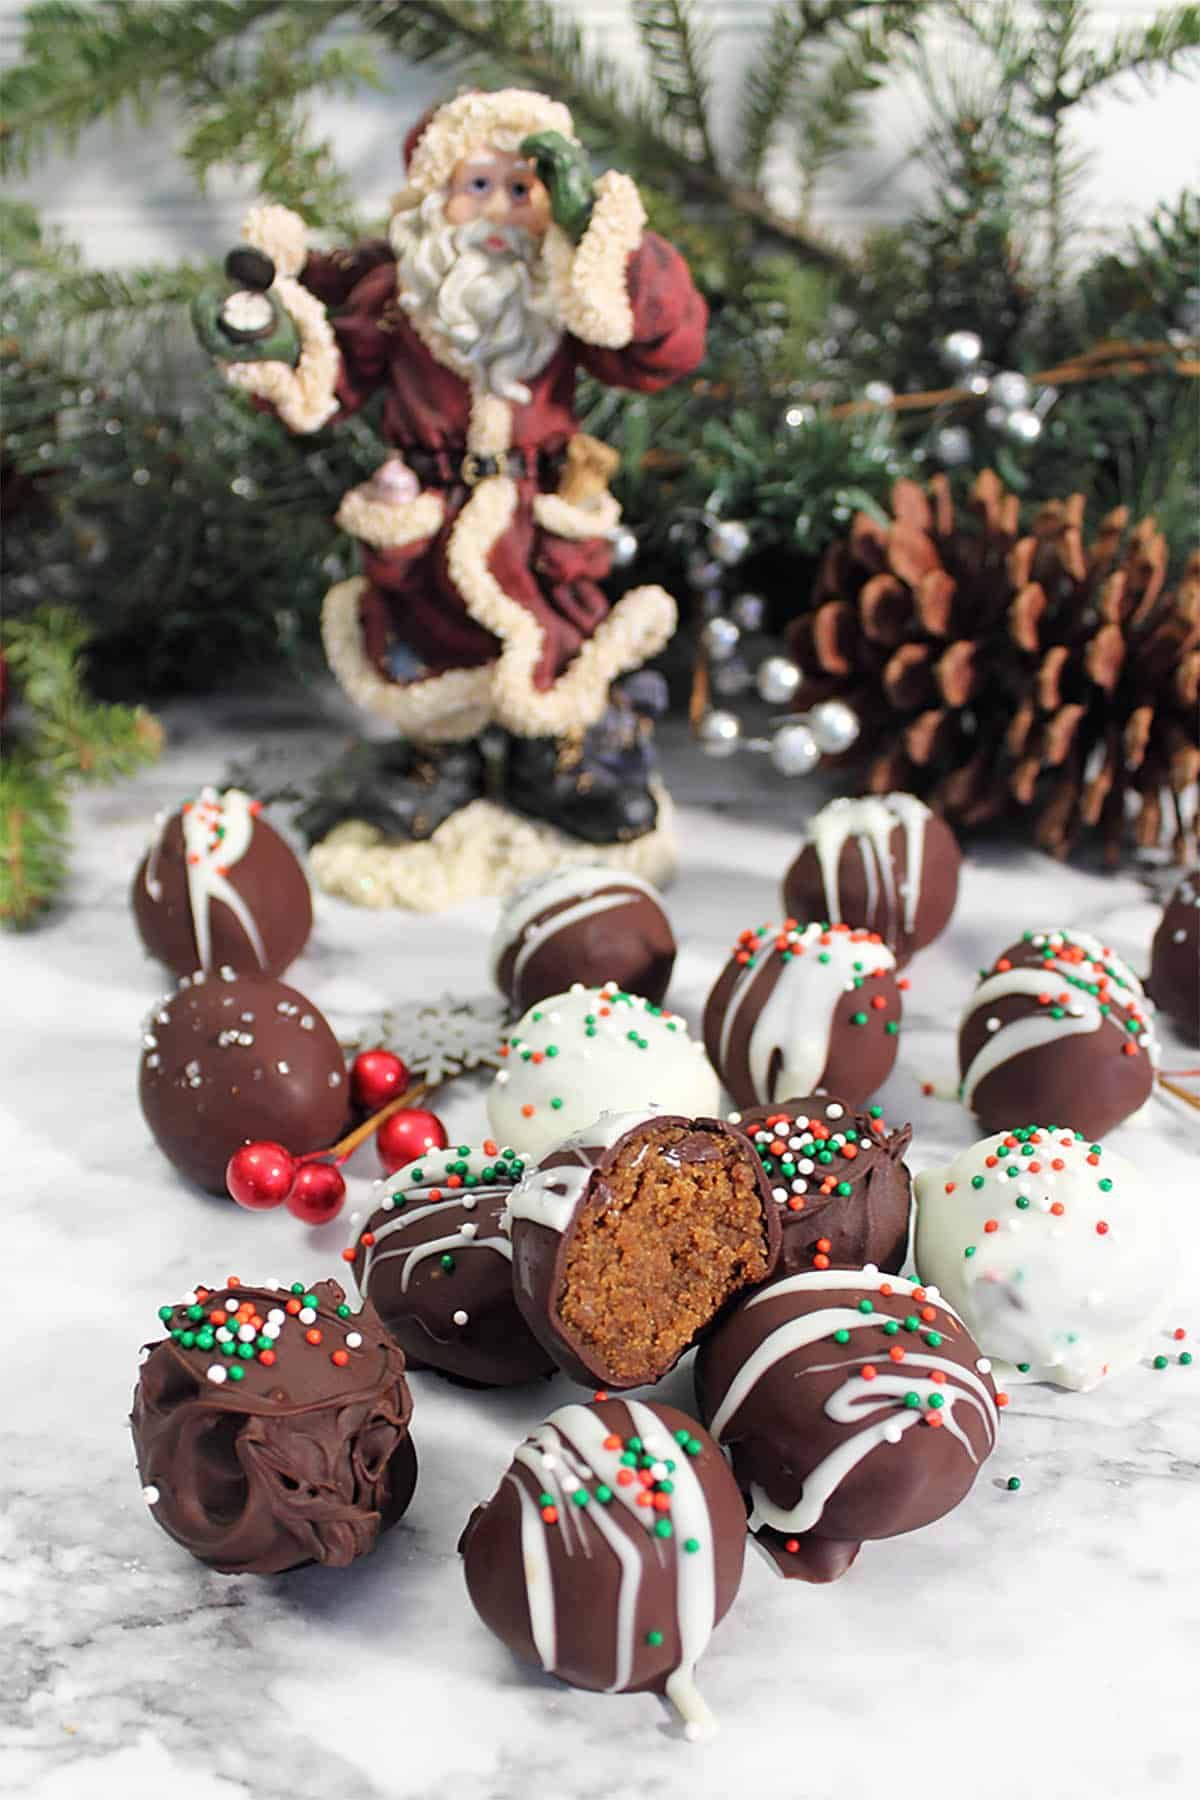 Truffles scattered on white table with santa, pinecone and greenery in background.